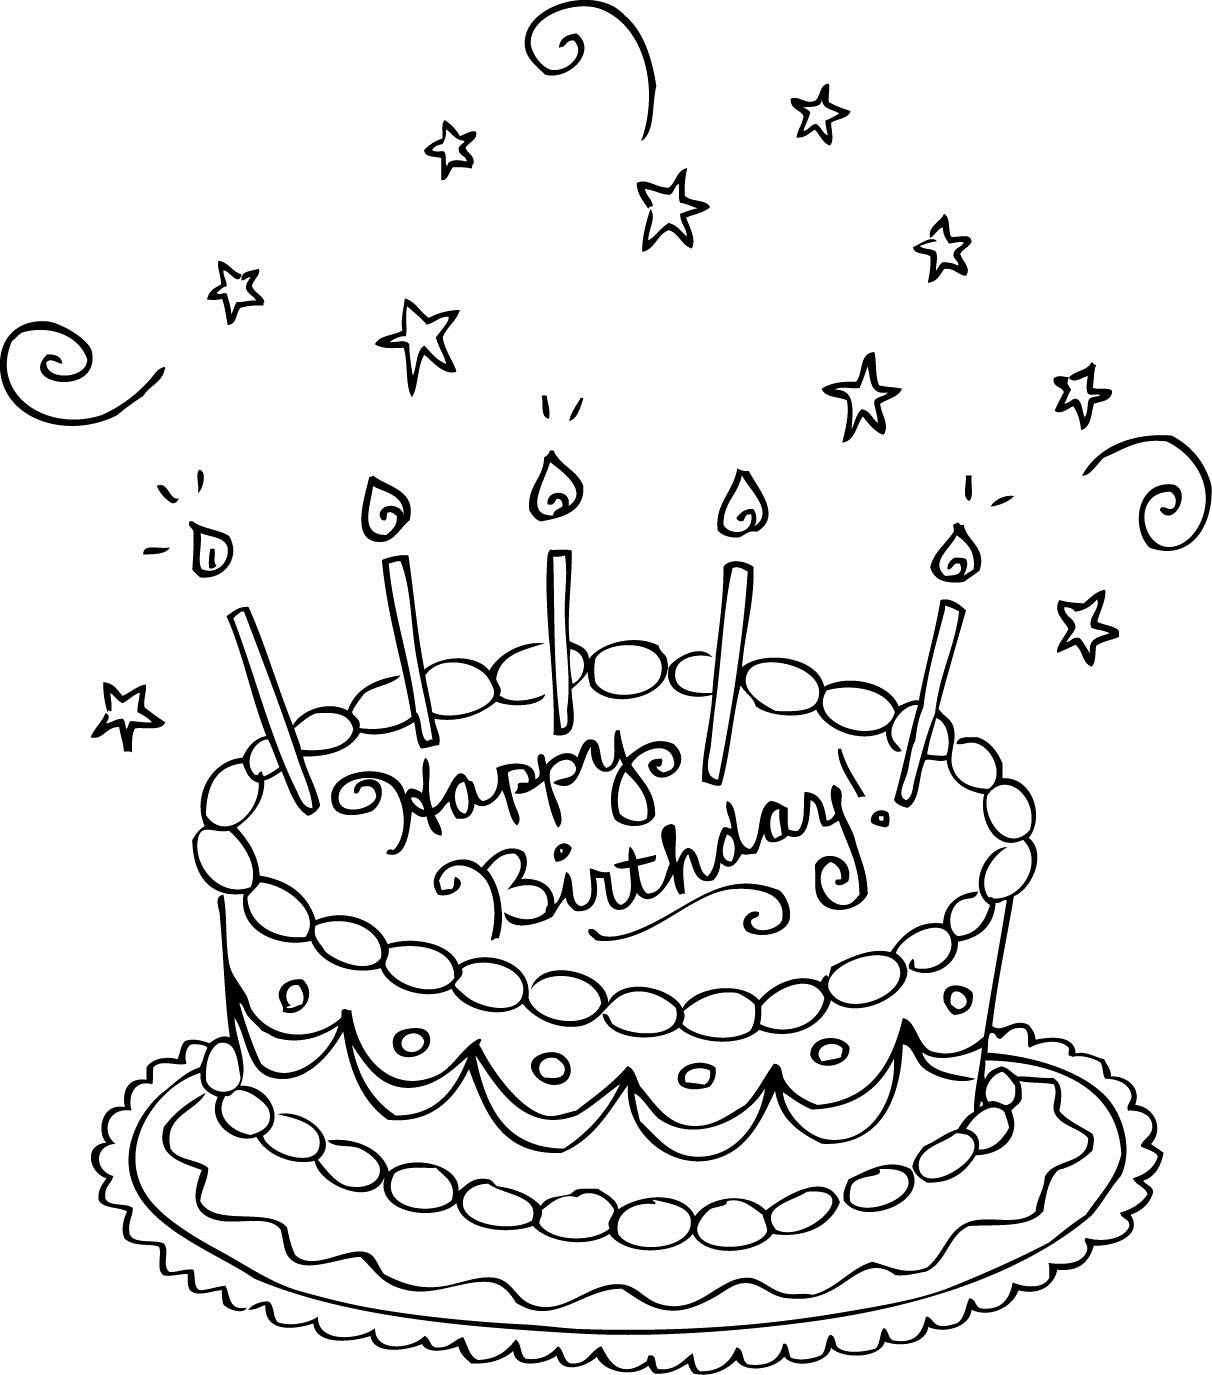 birthday cake coloring ; Coloring-Page-Birthday-Cake